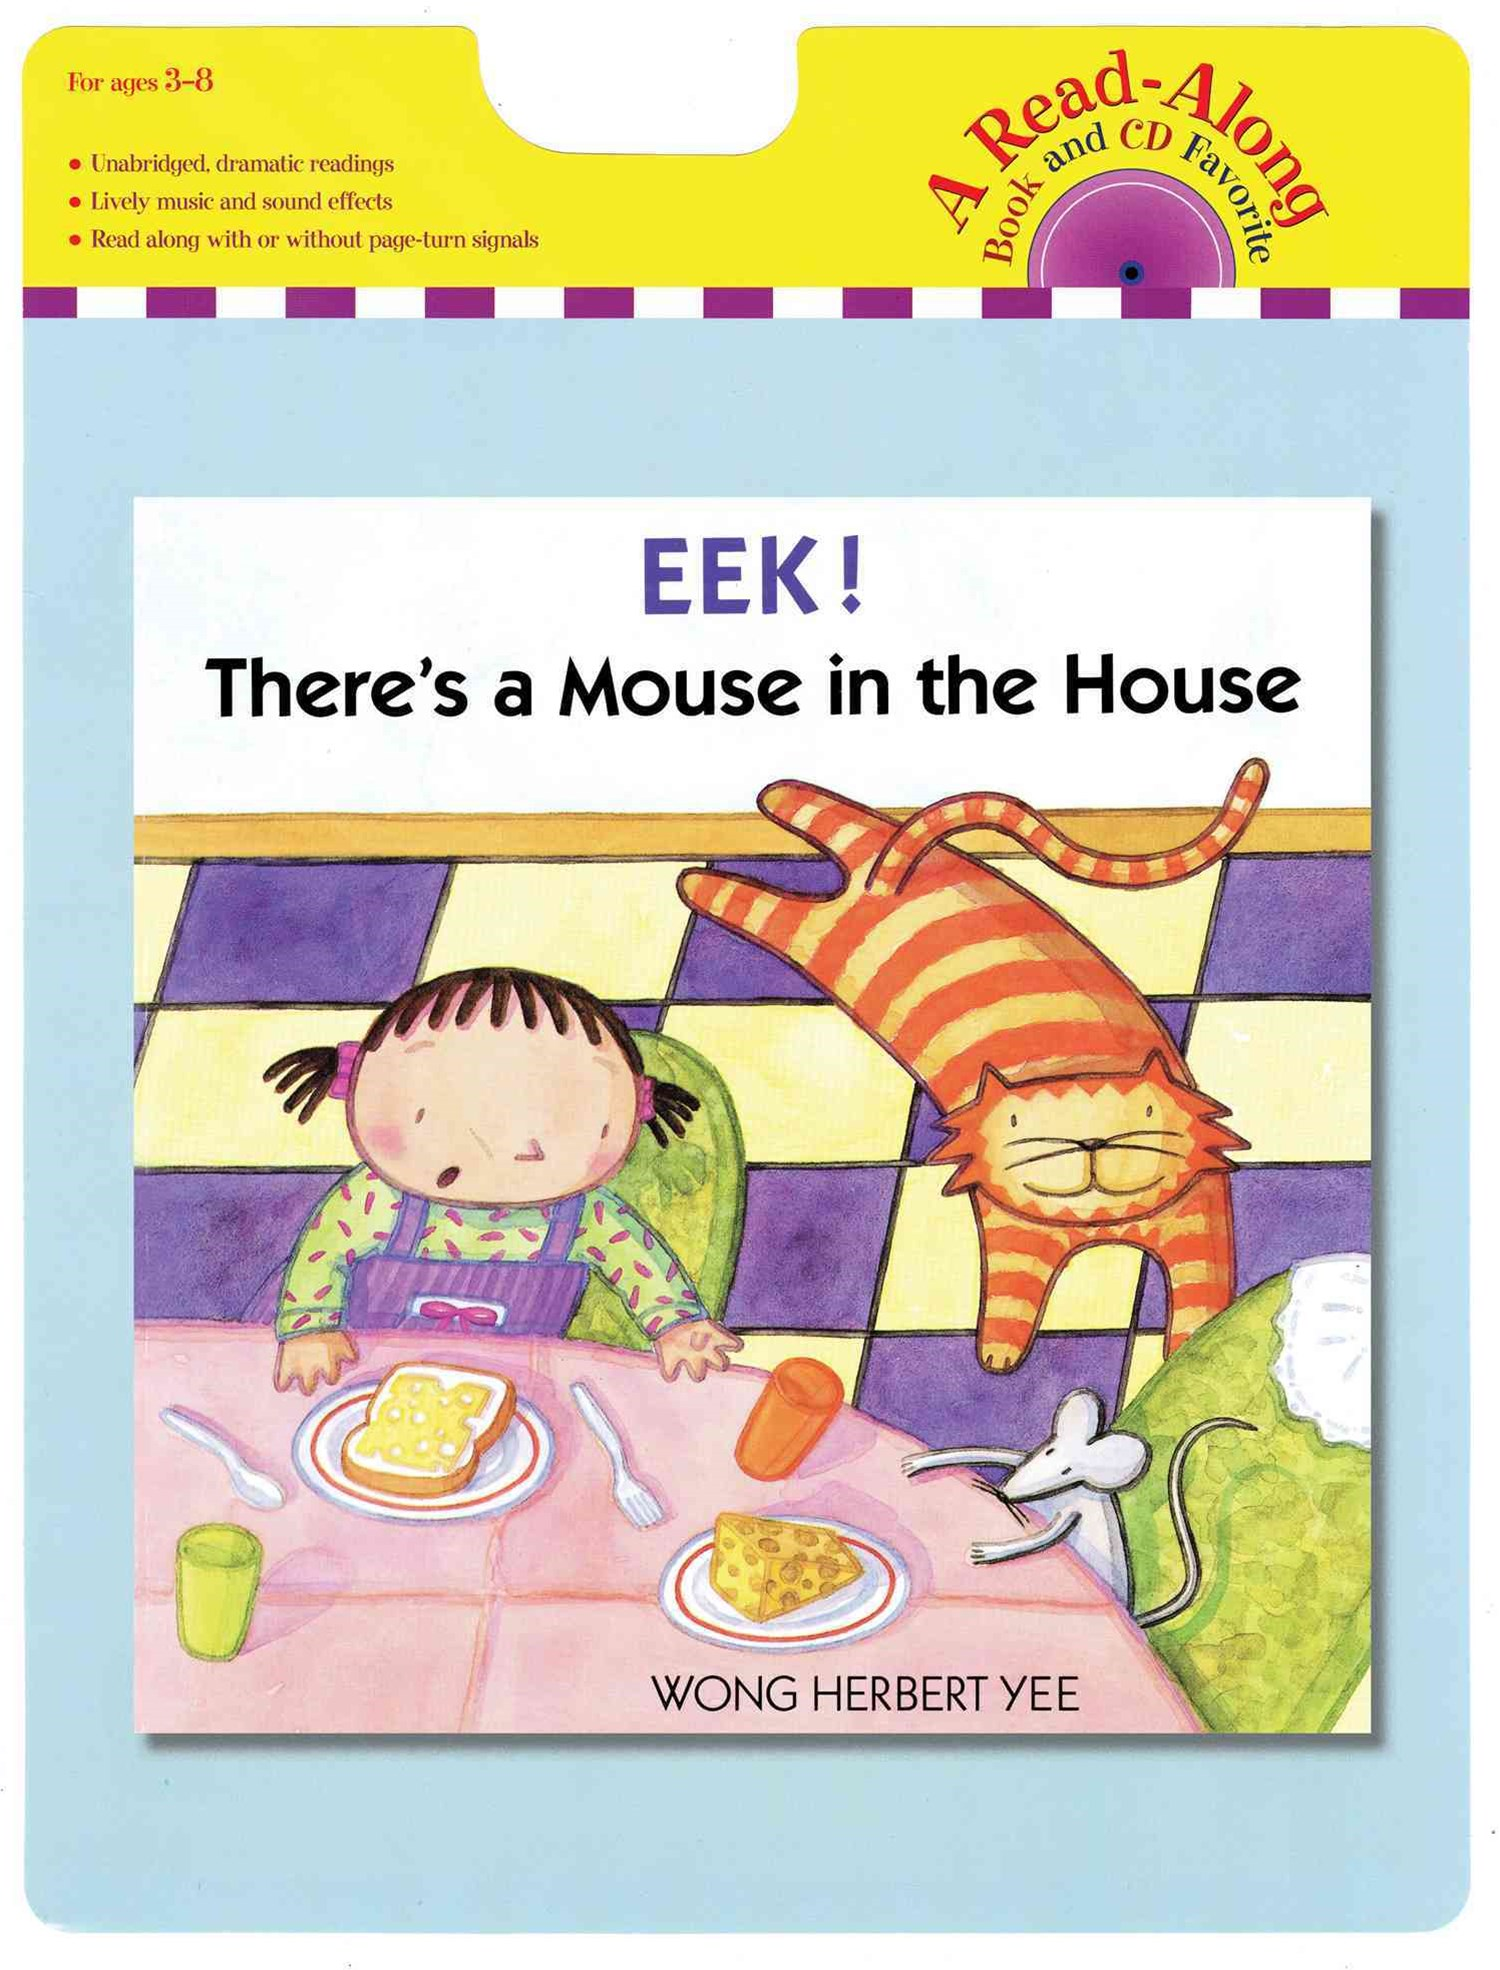 Eek! There's a Mouse in the House: Read-along Book